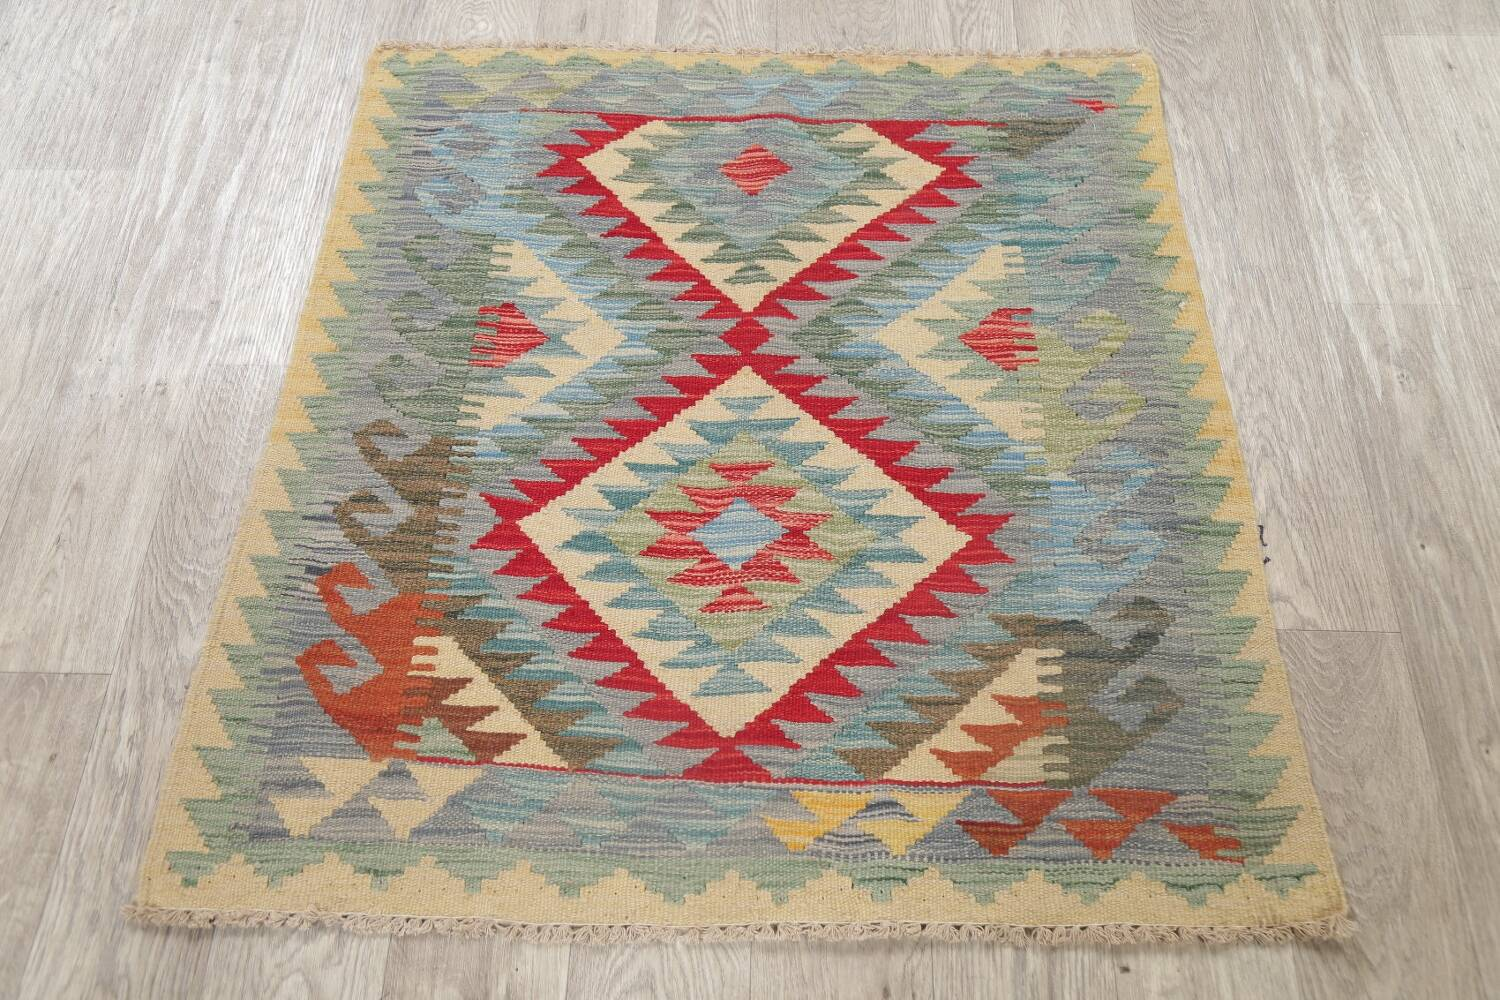 South-West Kilim Turkish Area Rug 3x3 Square image 9